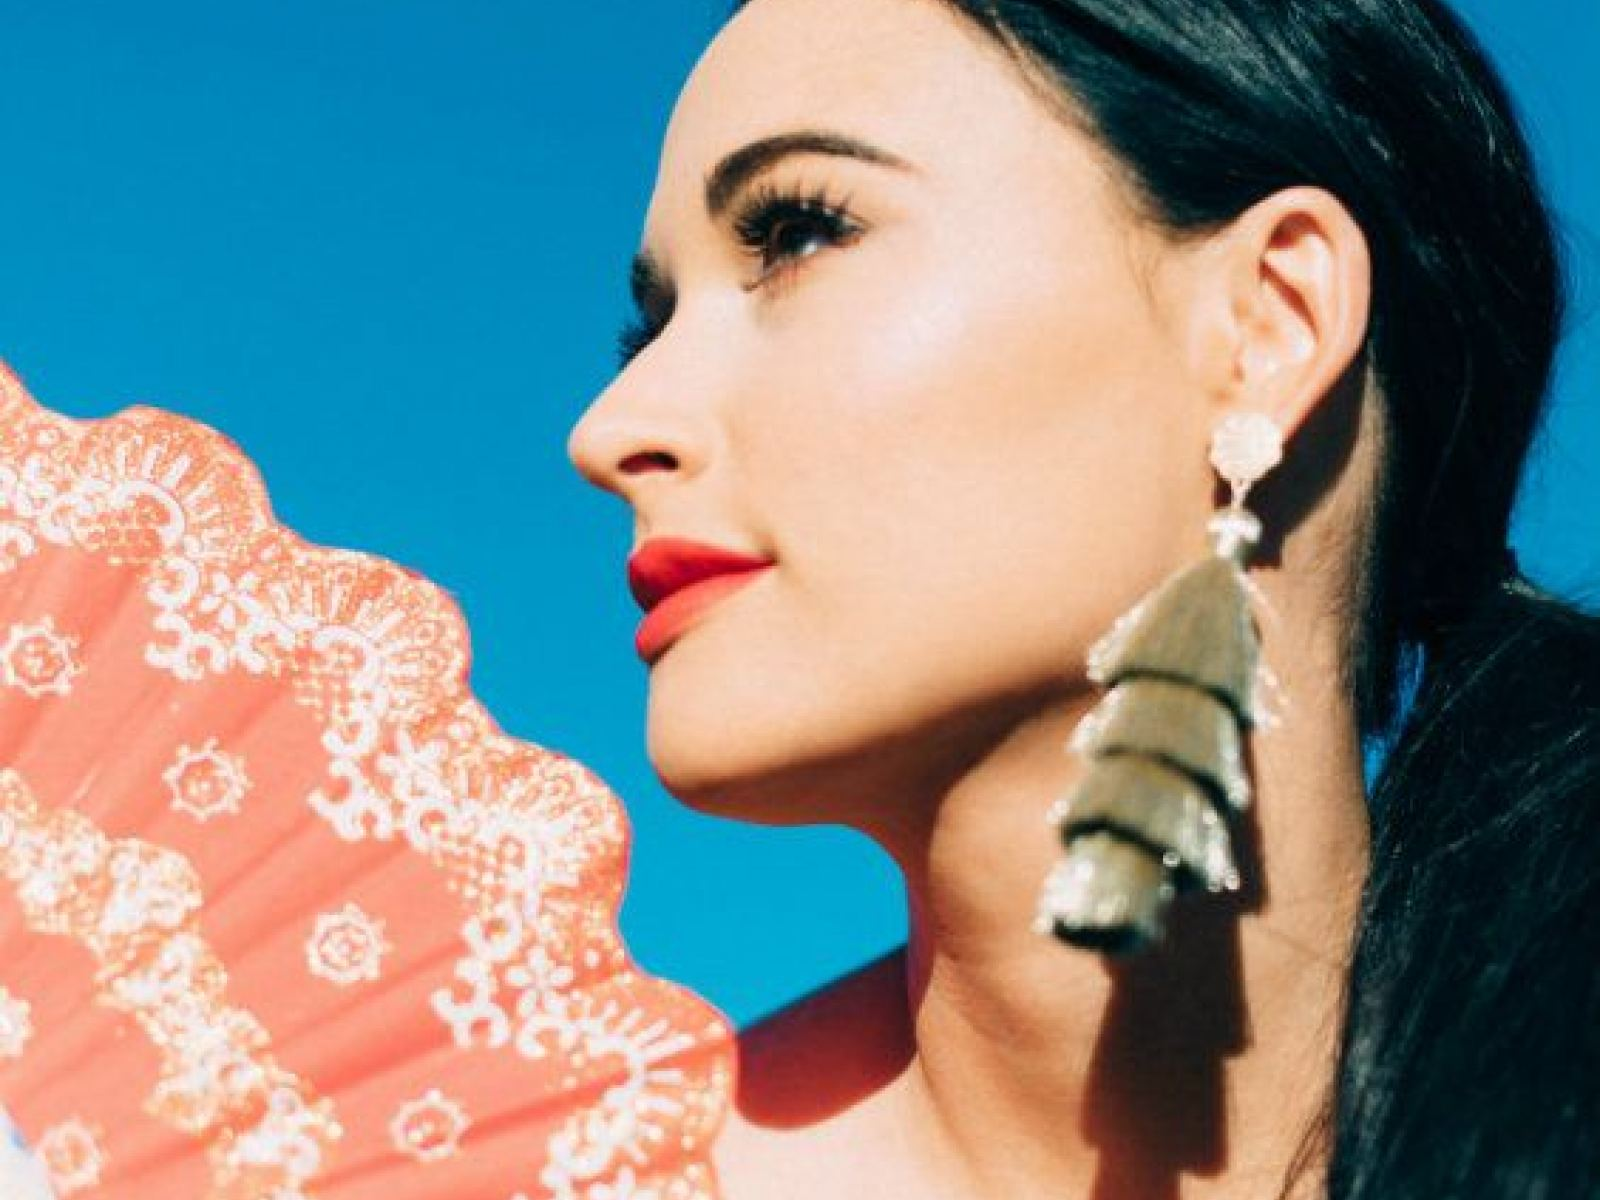 Main image for event titled Kacey Musgraves